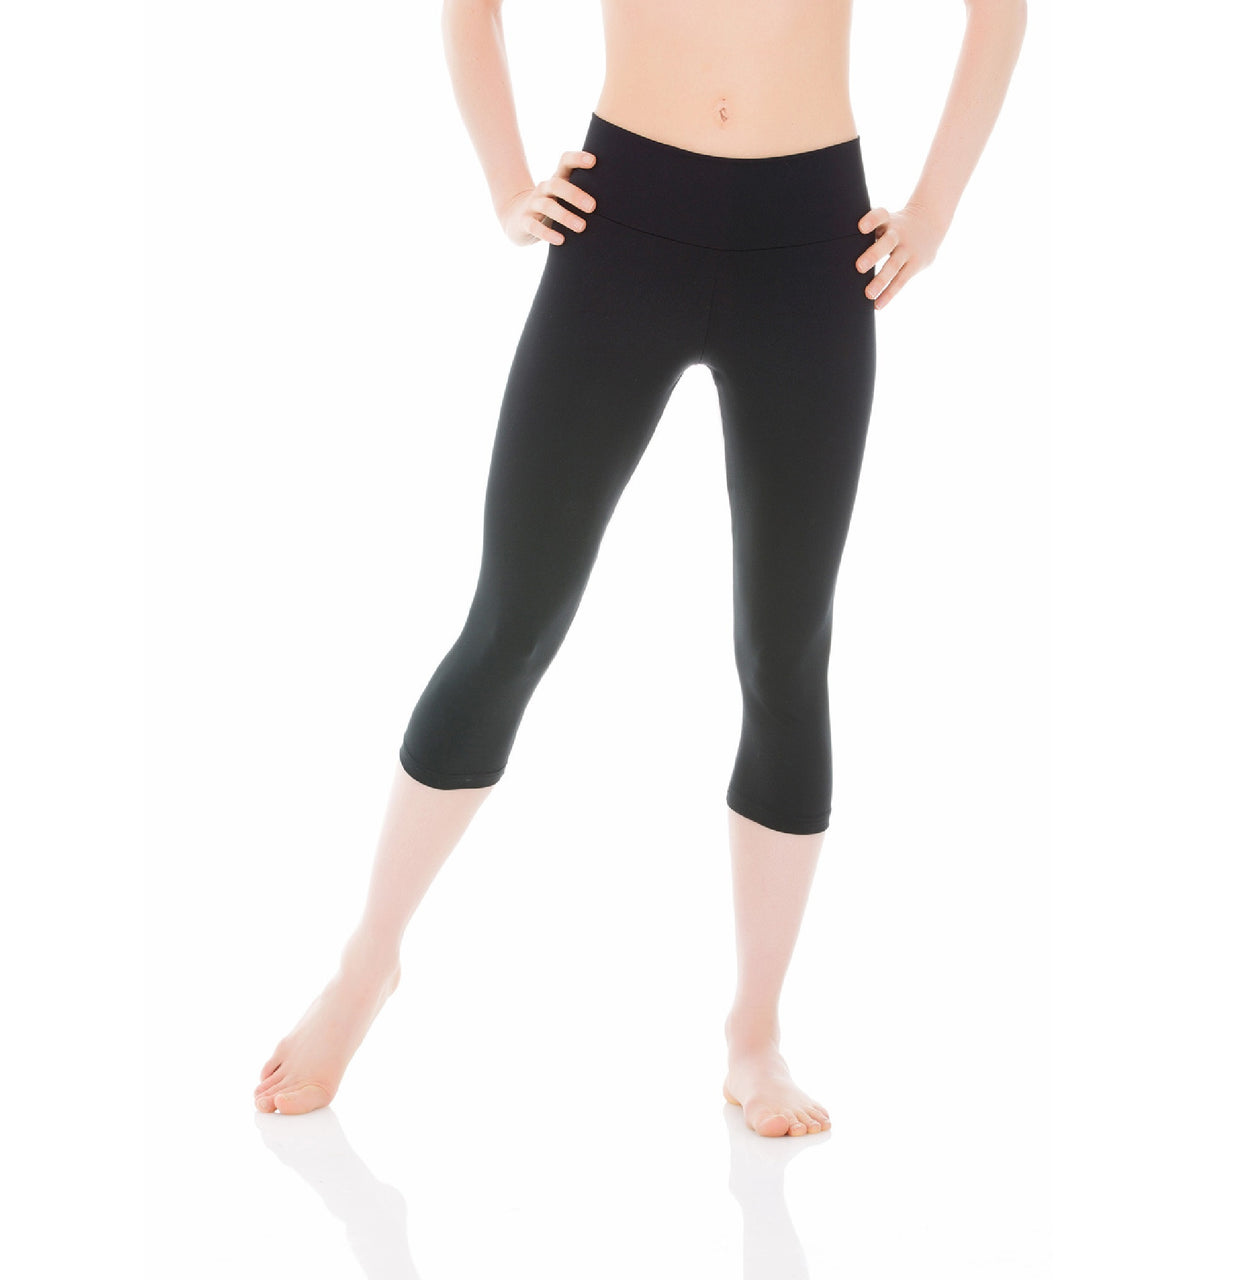 Mondor 3532 - Matrix Wide Band Capri Legging Adult